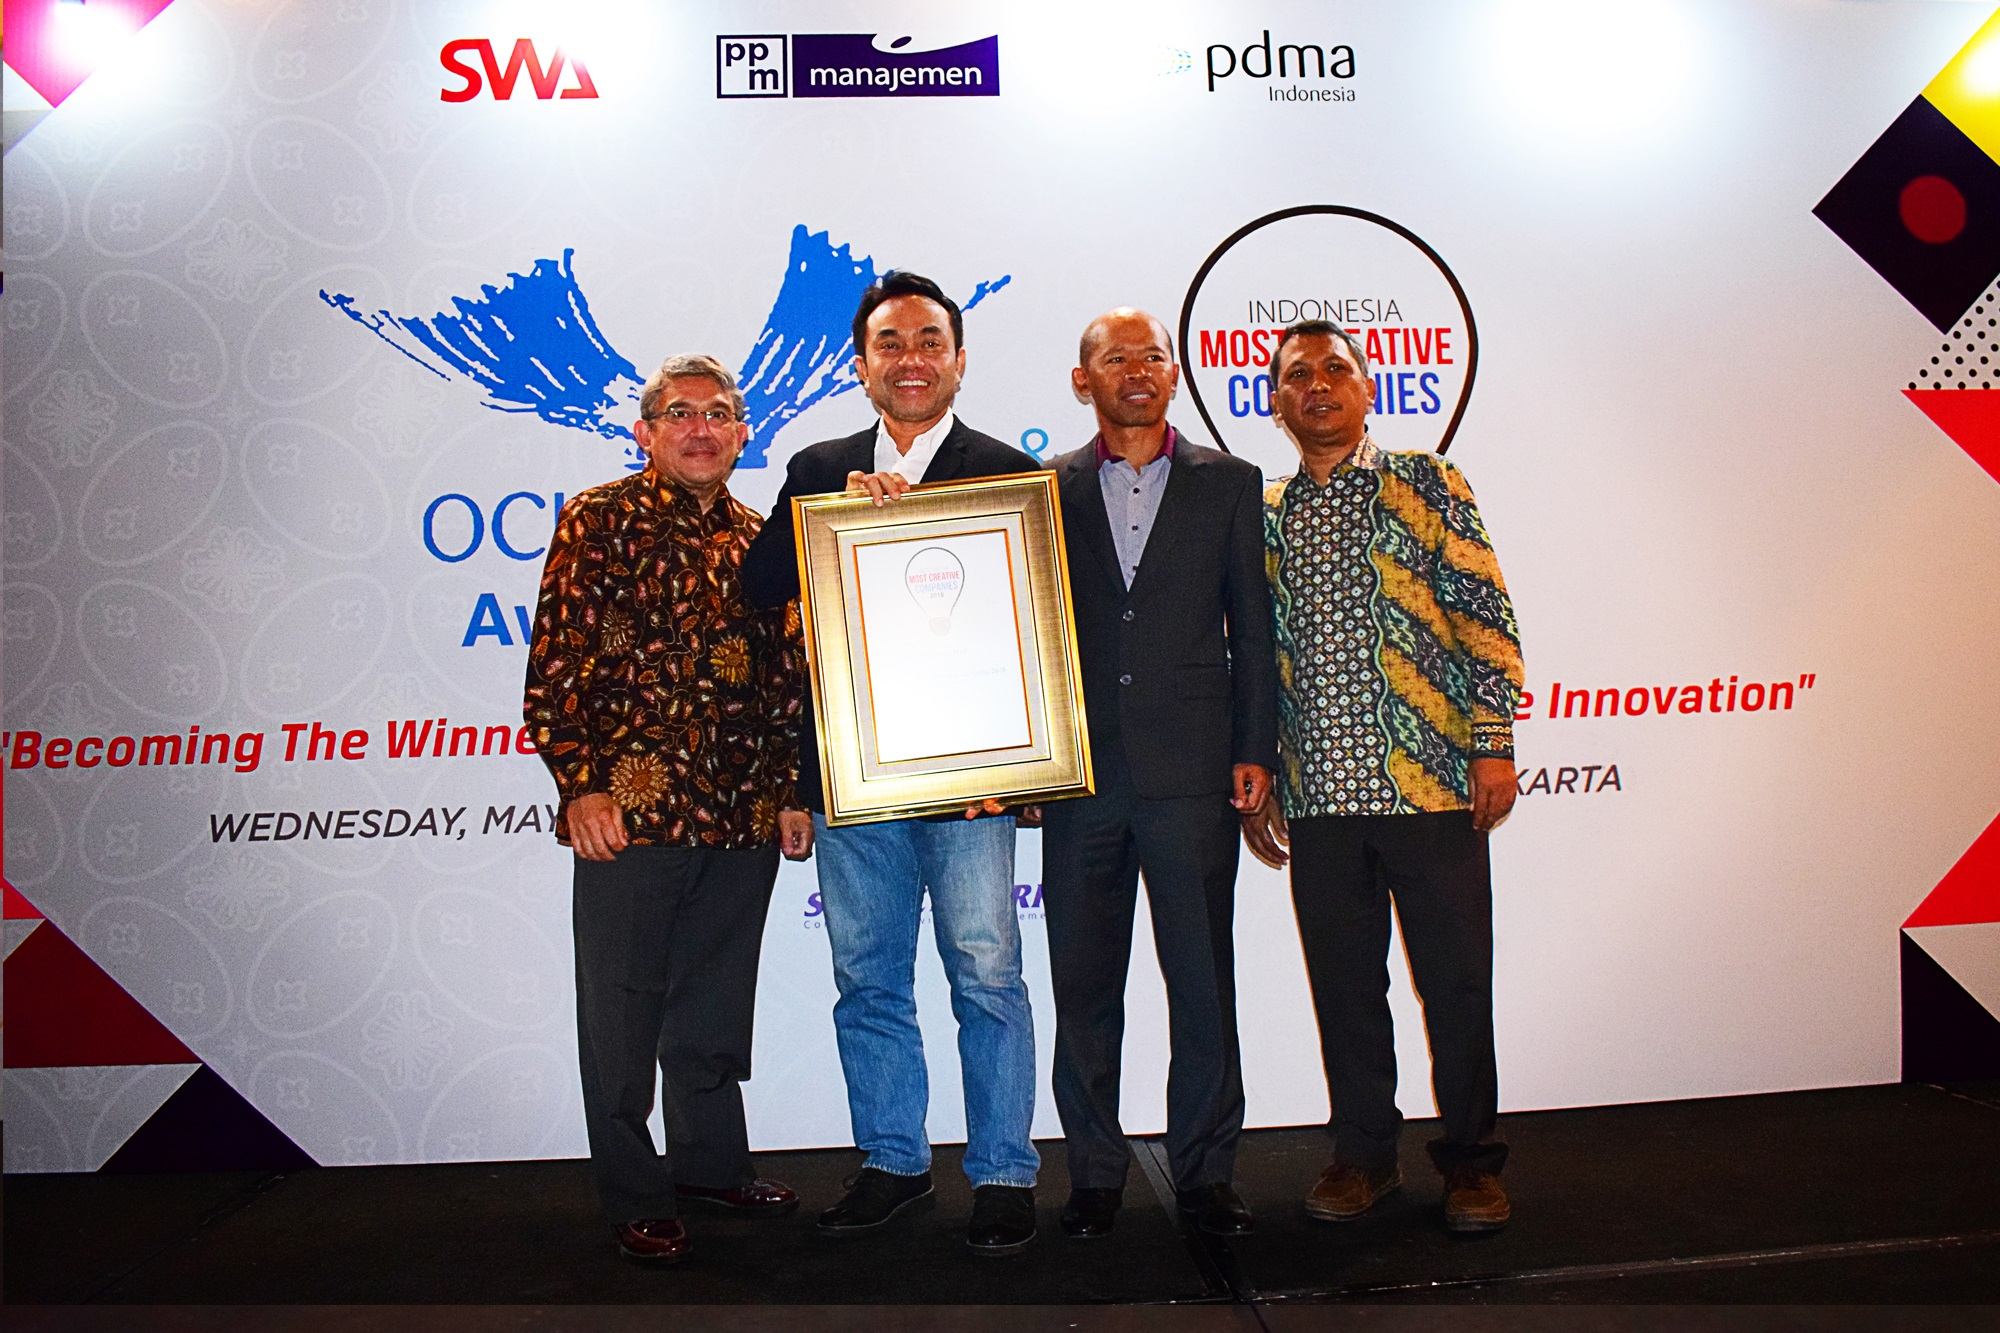 /public/files/image-companny/award-slider/8.OCIIndonesaiAward2018-PakuwonMall-IndonesiaMostCreativeCompany2018-May2018.jpg